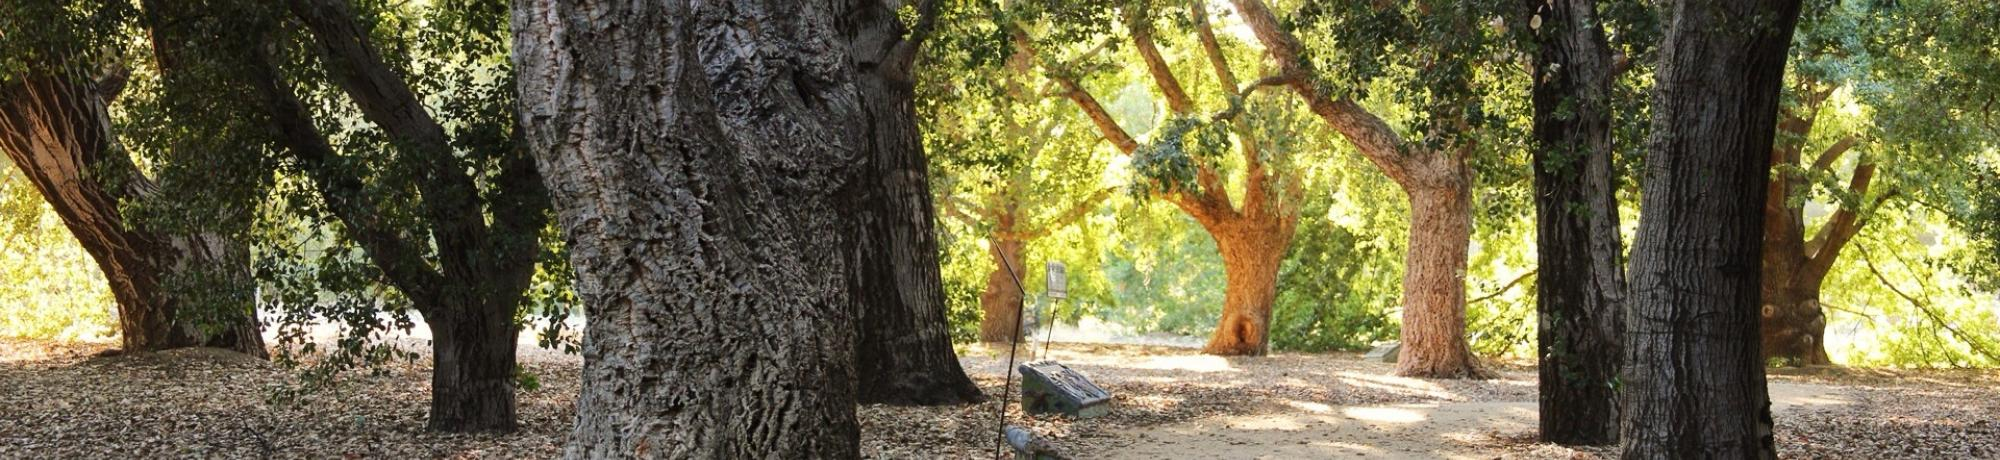 Image of the Peter J. Shields Oak Grove in the UC Davis Arboretum.